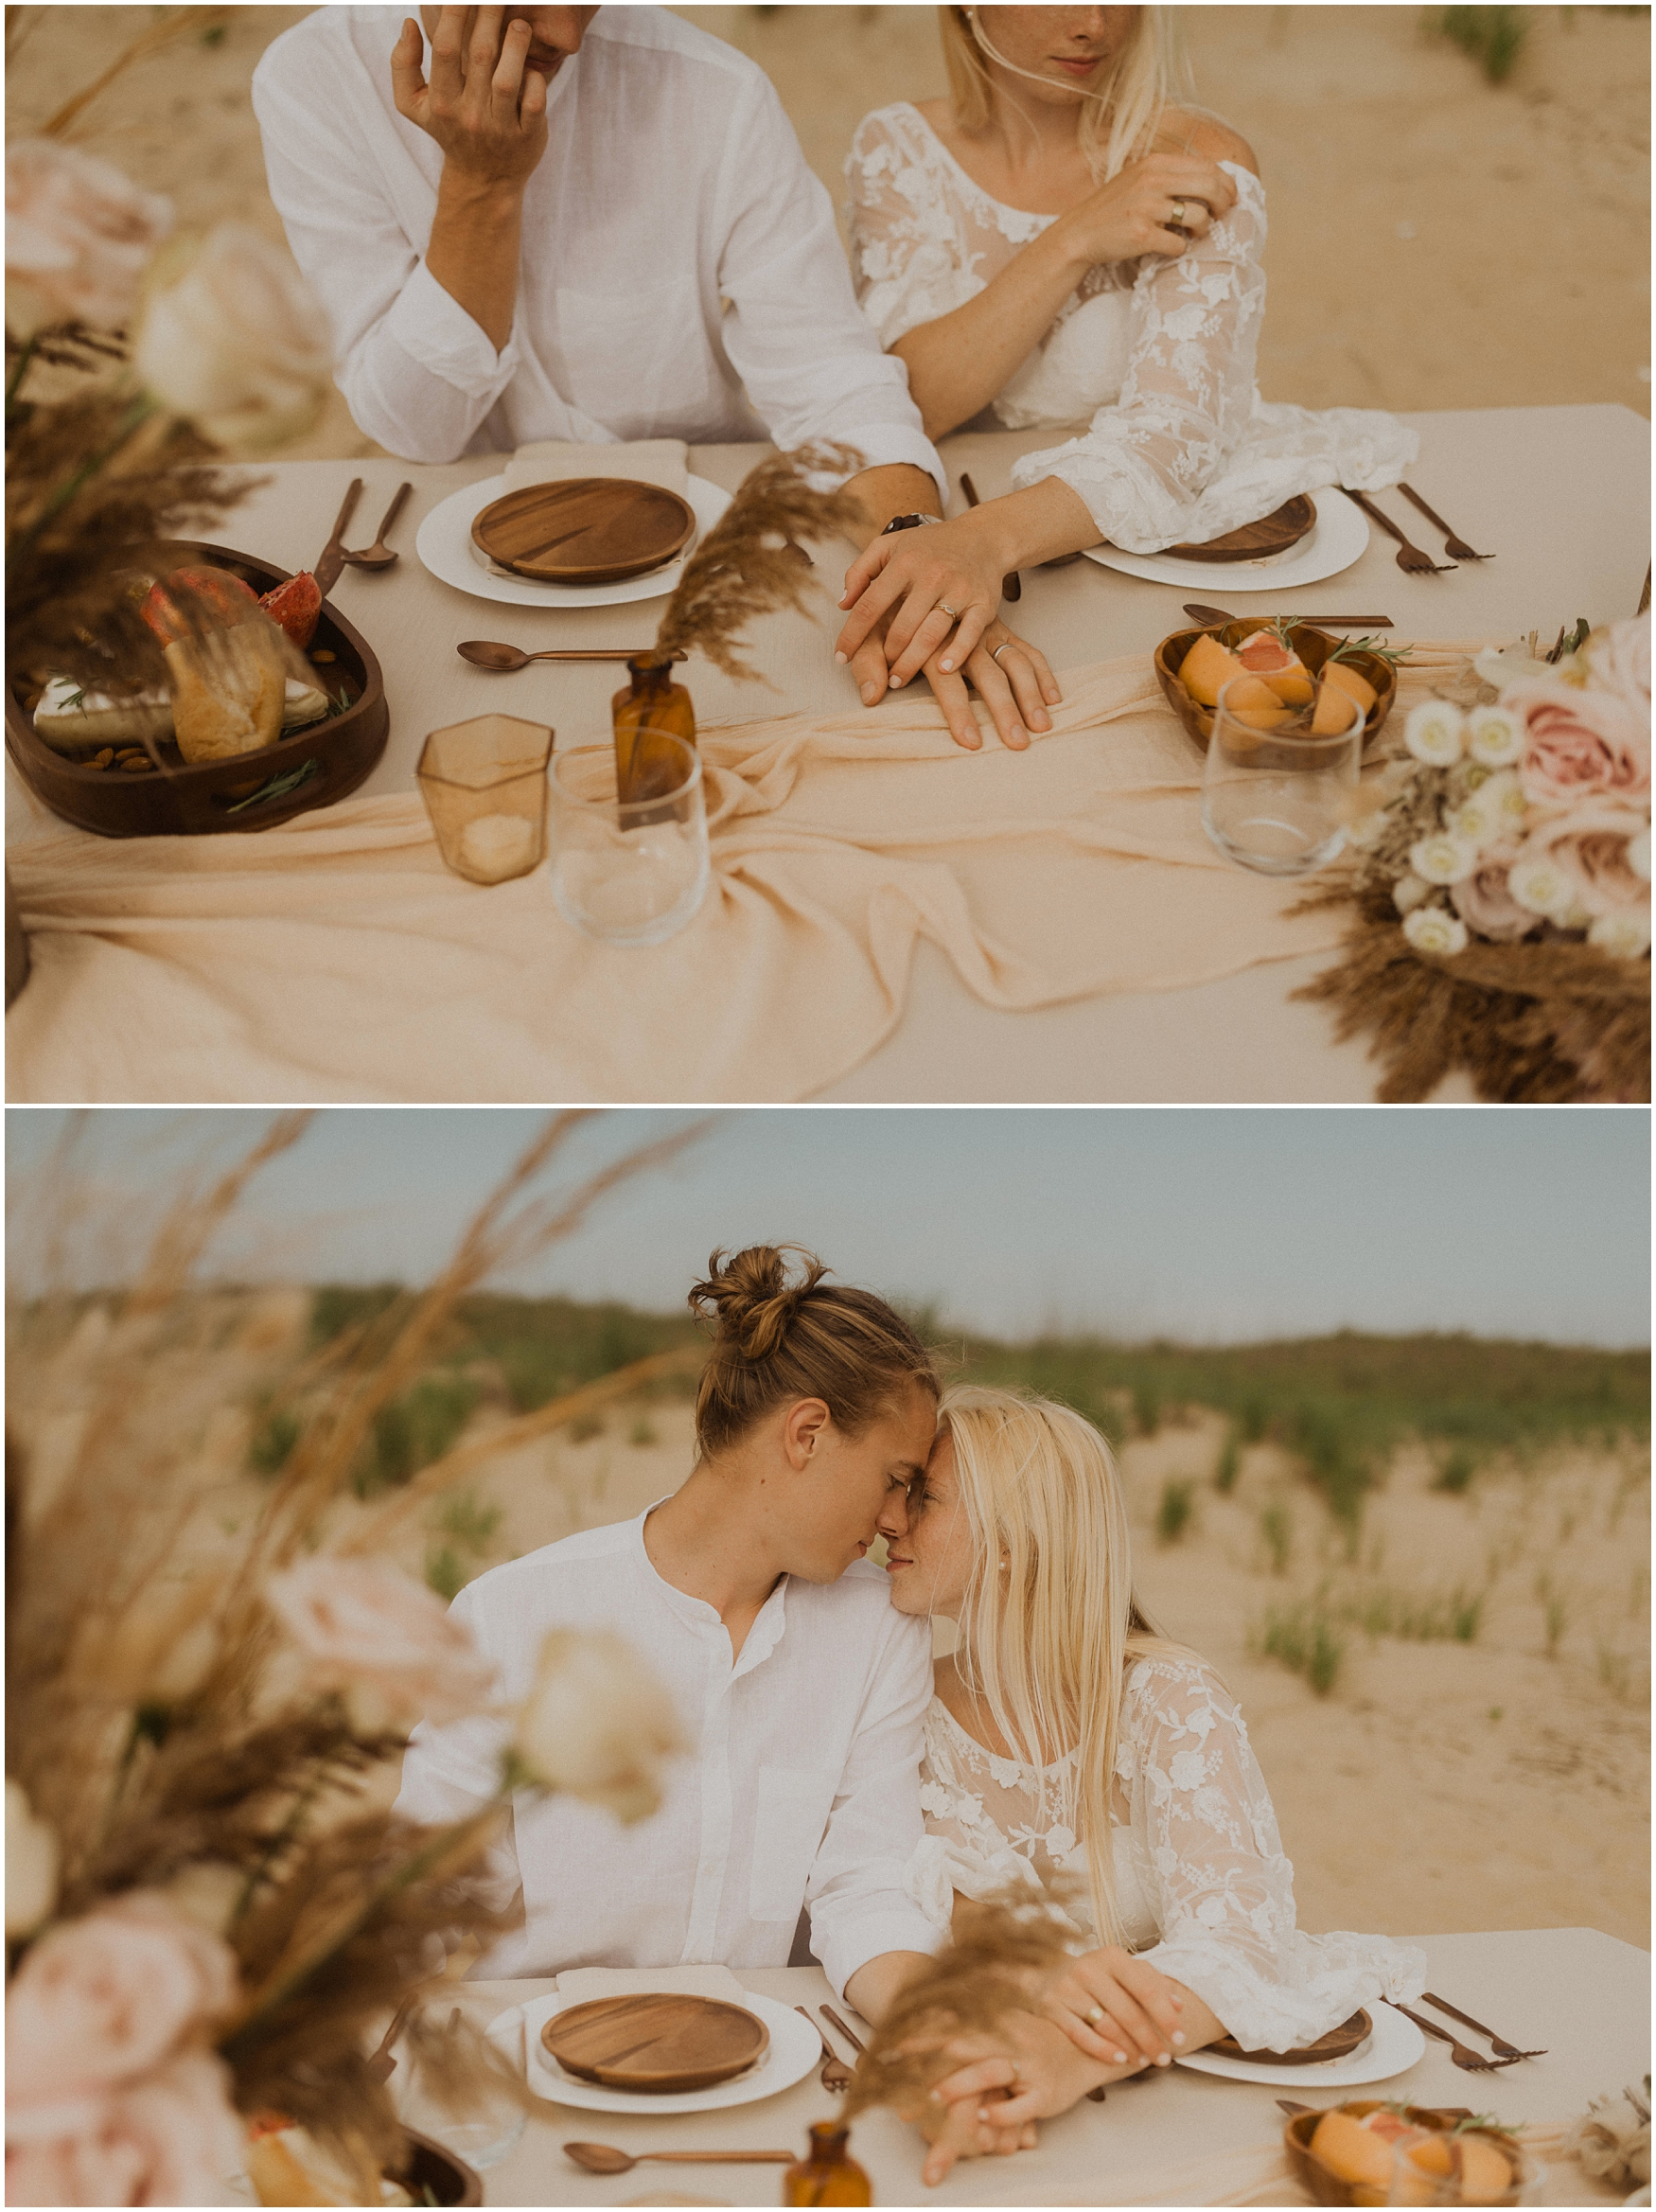 Hannah_Baldwin_Photography_Virginia_Beach_Elopement_Sunrise_0221.jpg